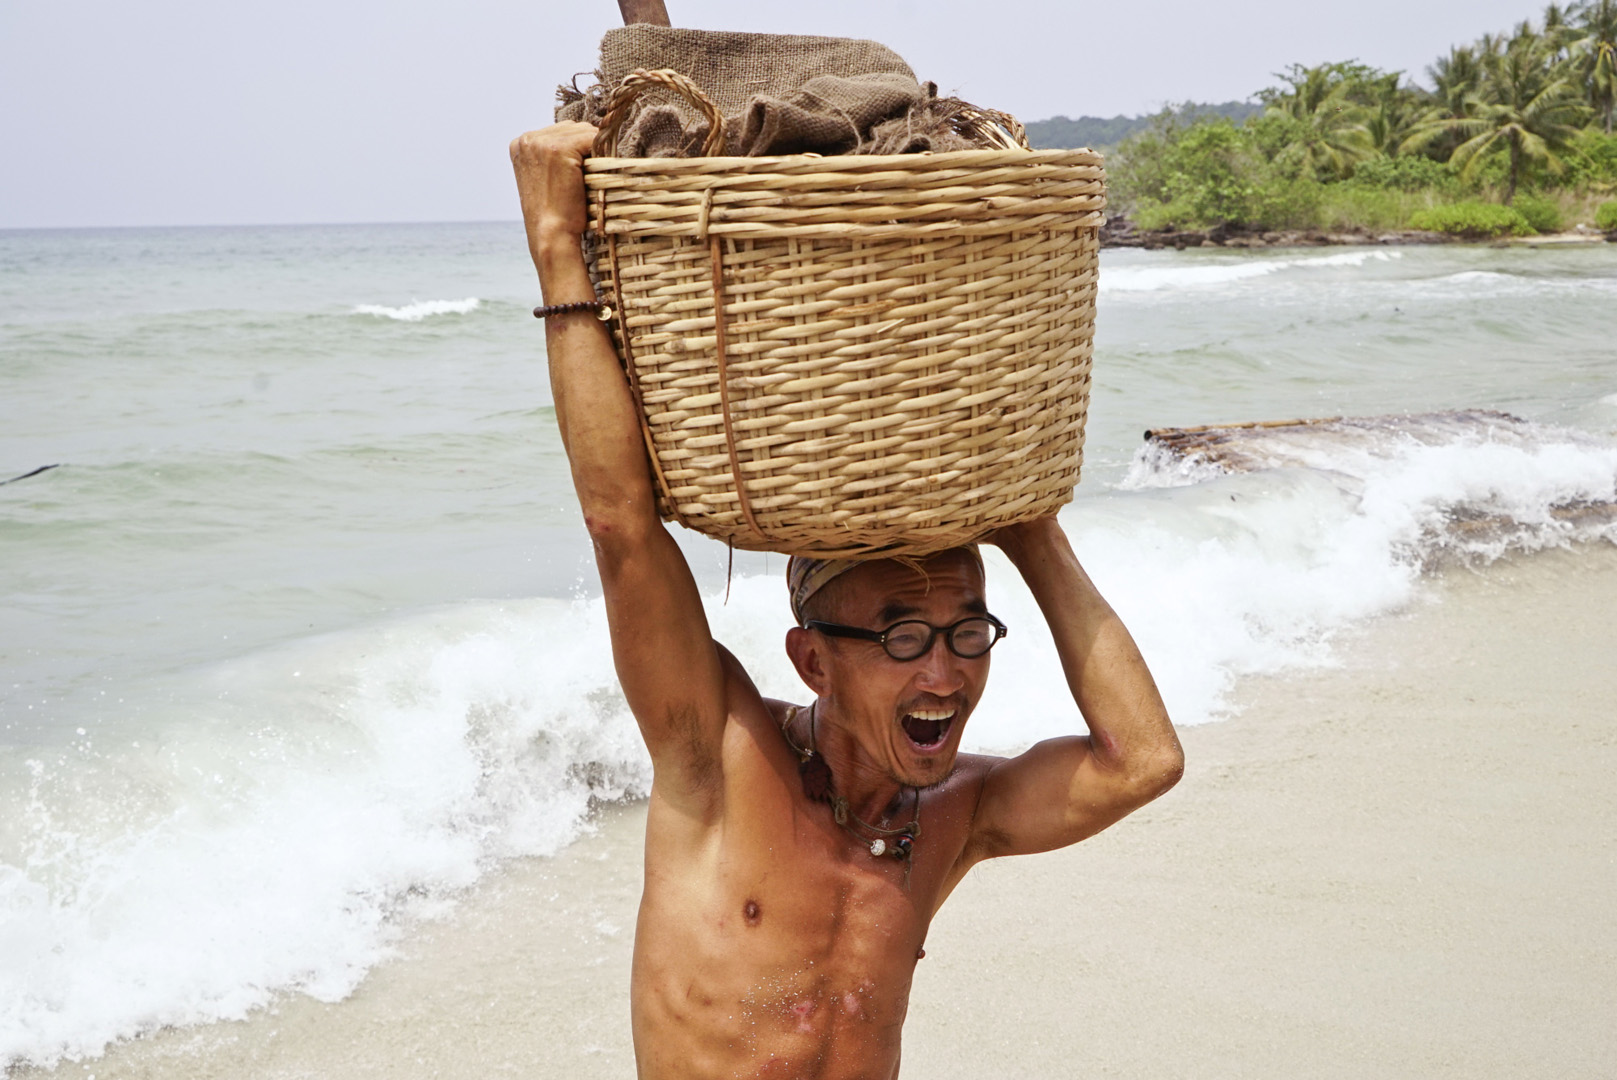 Tai helps carry supplies off the boat.